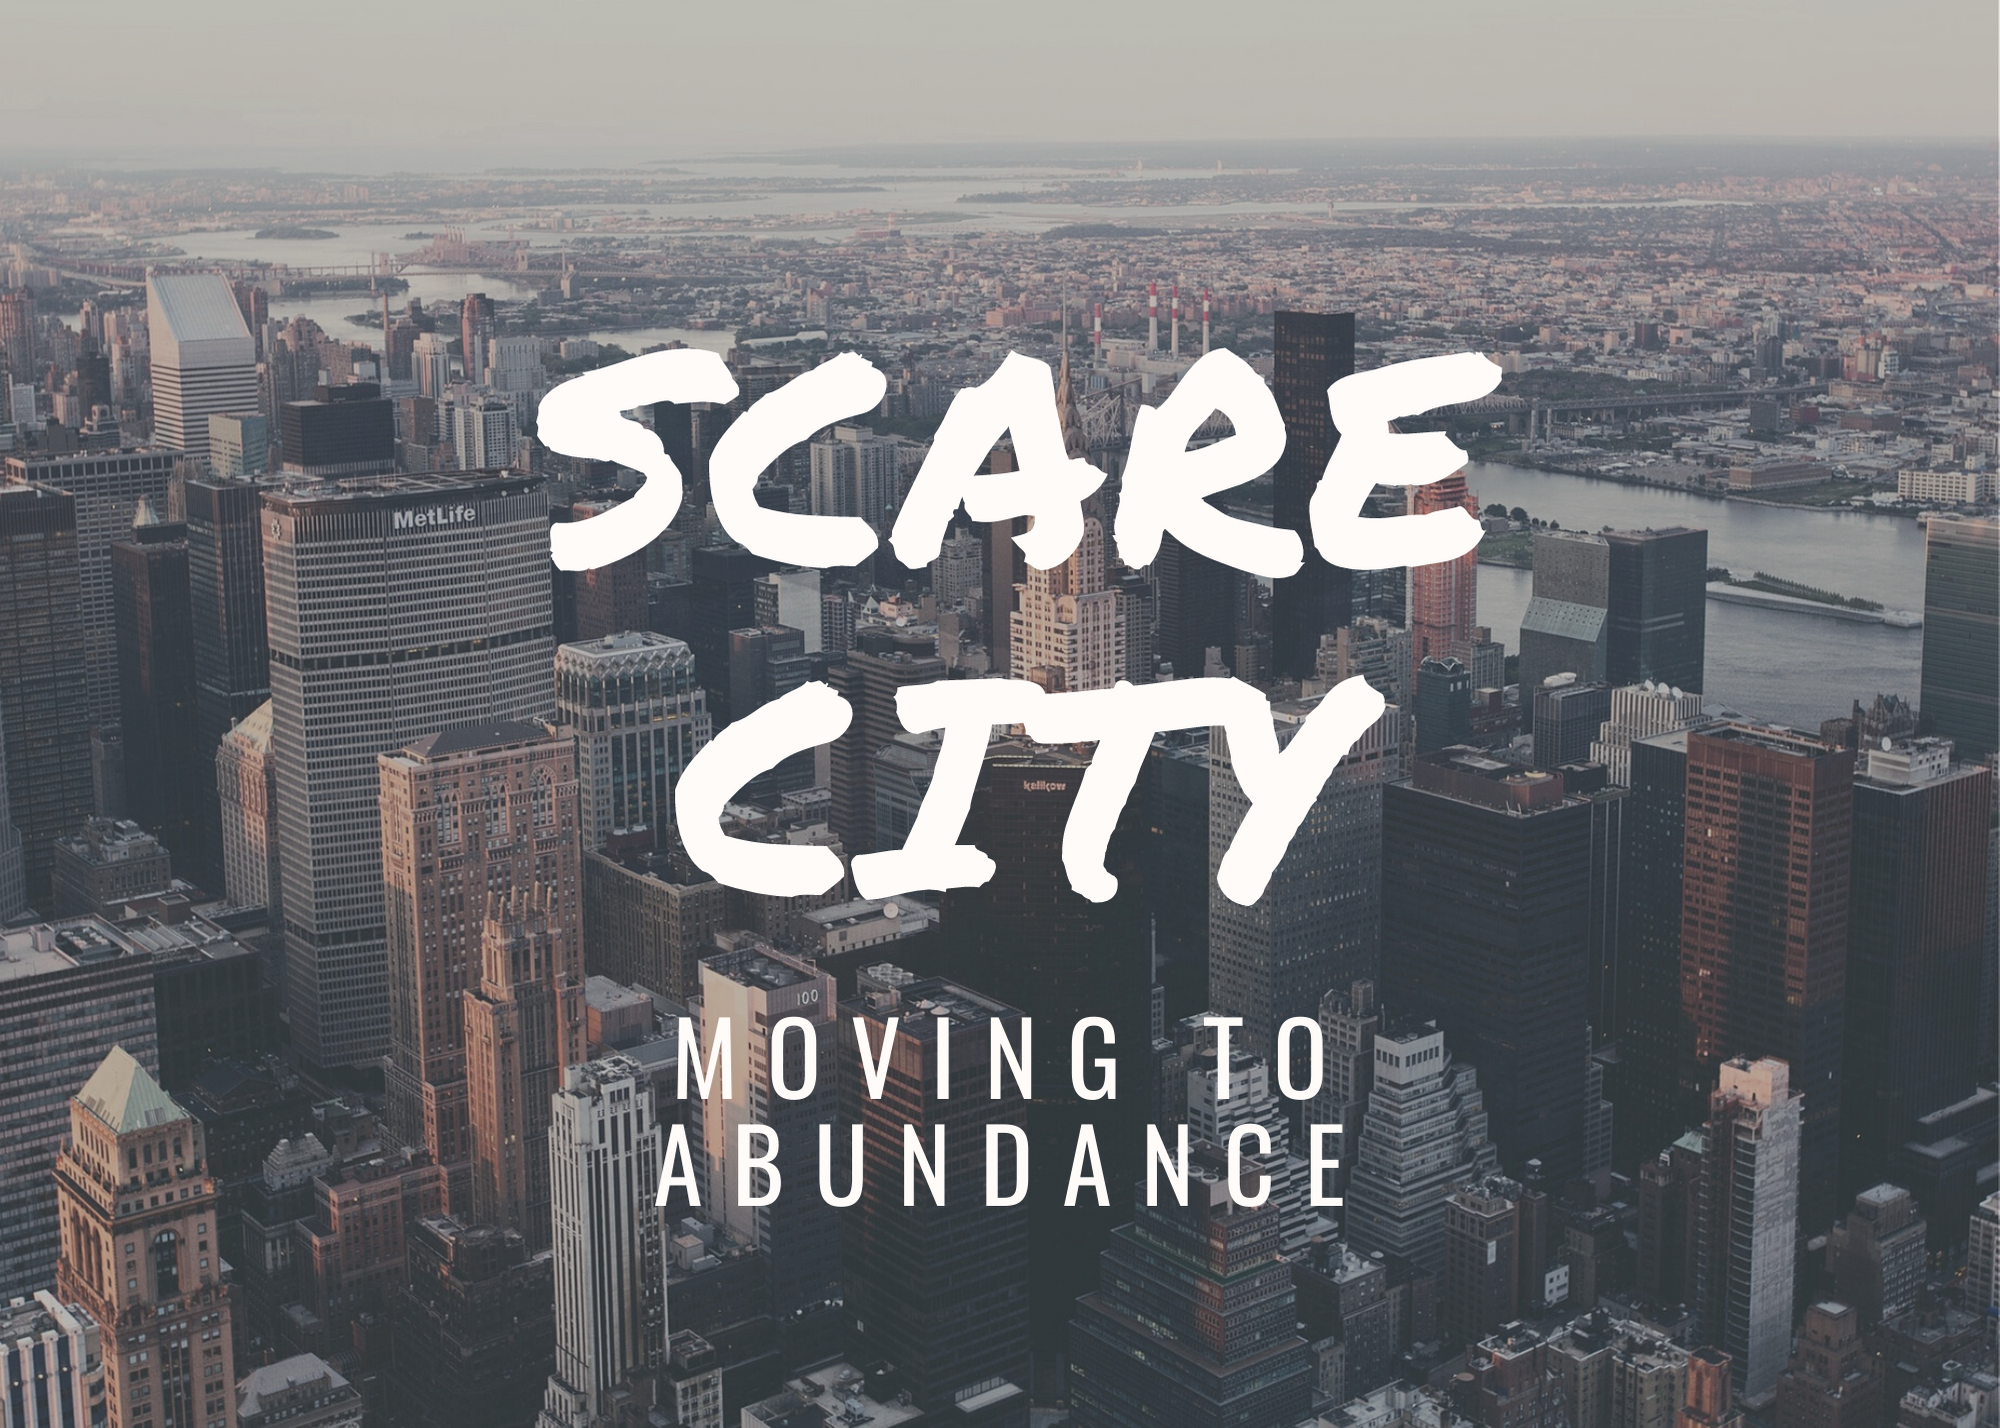 Scare City or Abundance Image